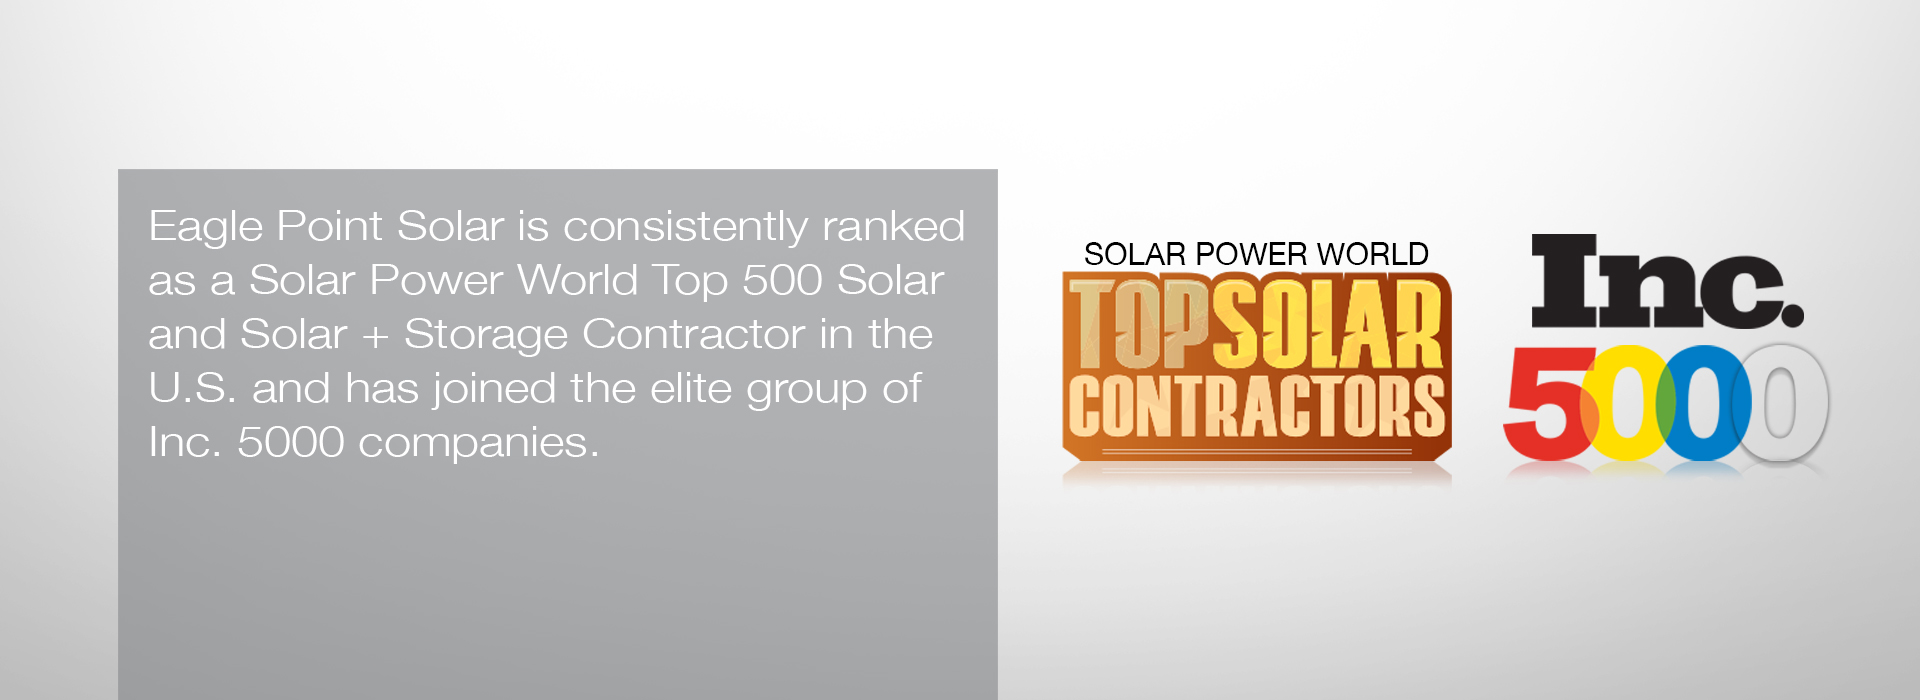 EPS_1920X700_ROTATOR_TOP_SOLAR_CONTRACTOR_V2B